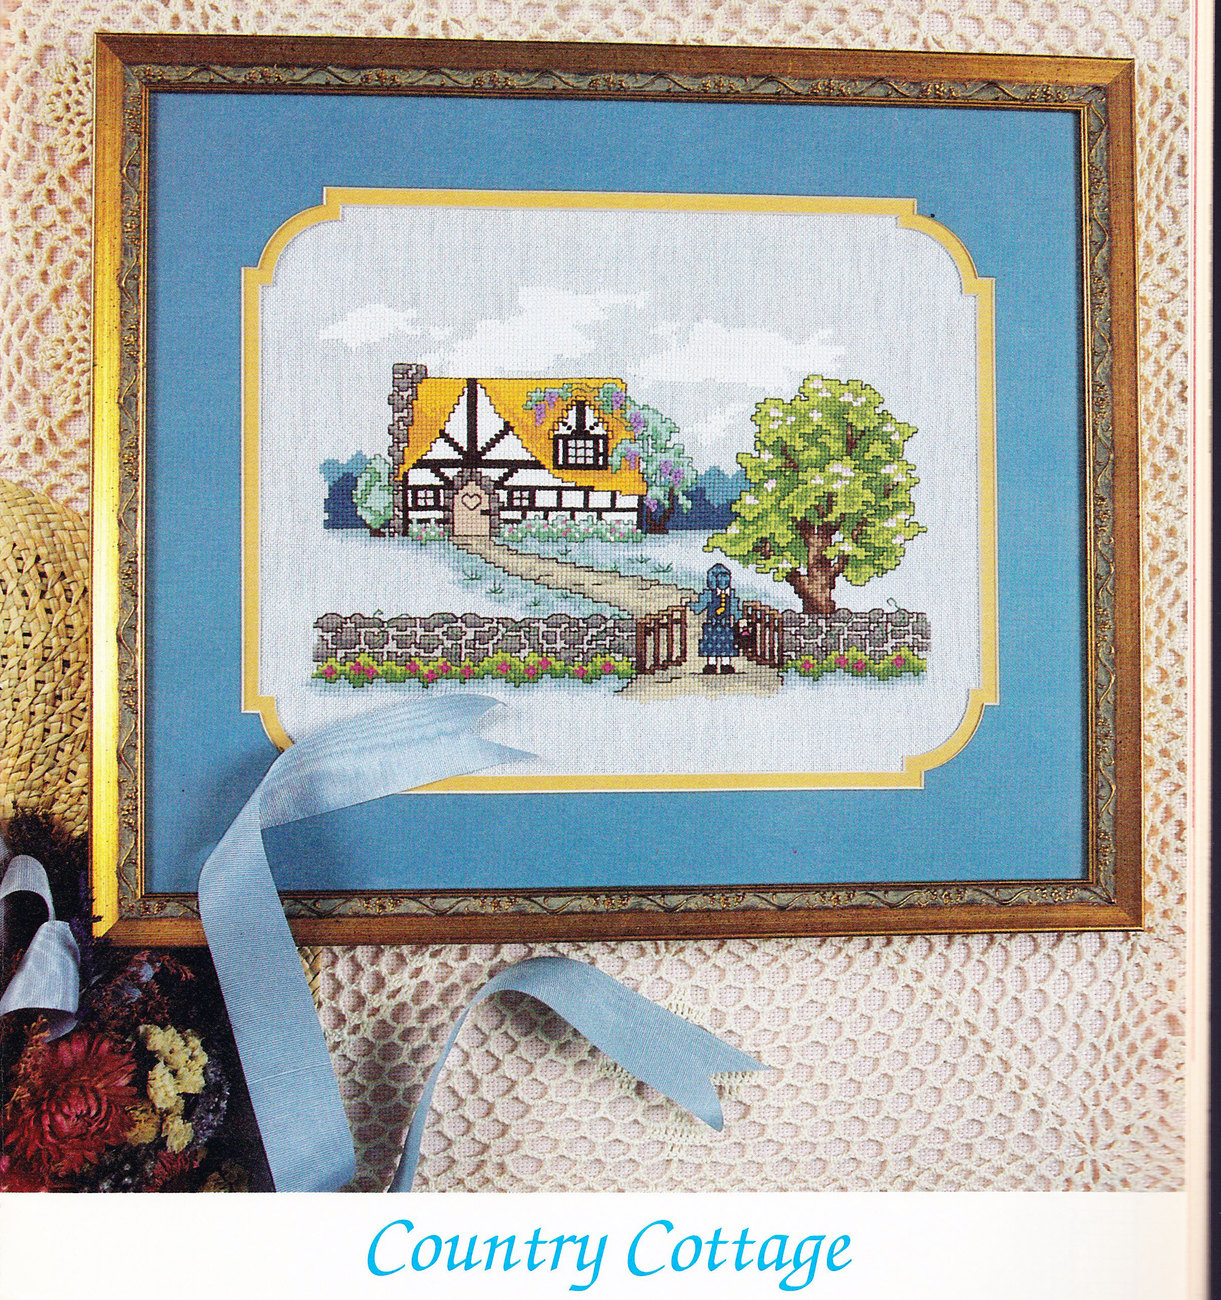 THE CROSS STITCHER VOL. 9, NO.6 YELLOW PERCH PINK FLAMINGOS CLADDAGH RING ROSES